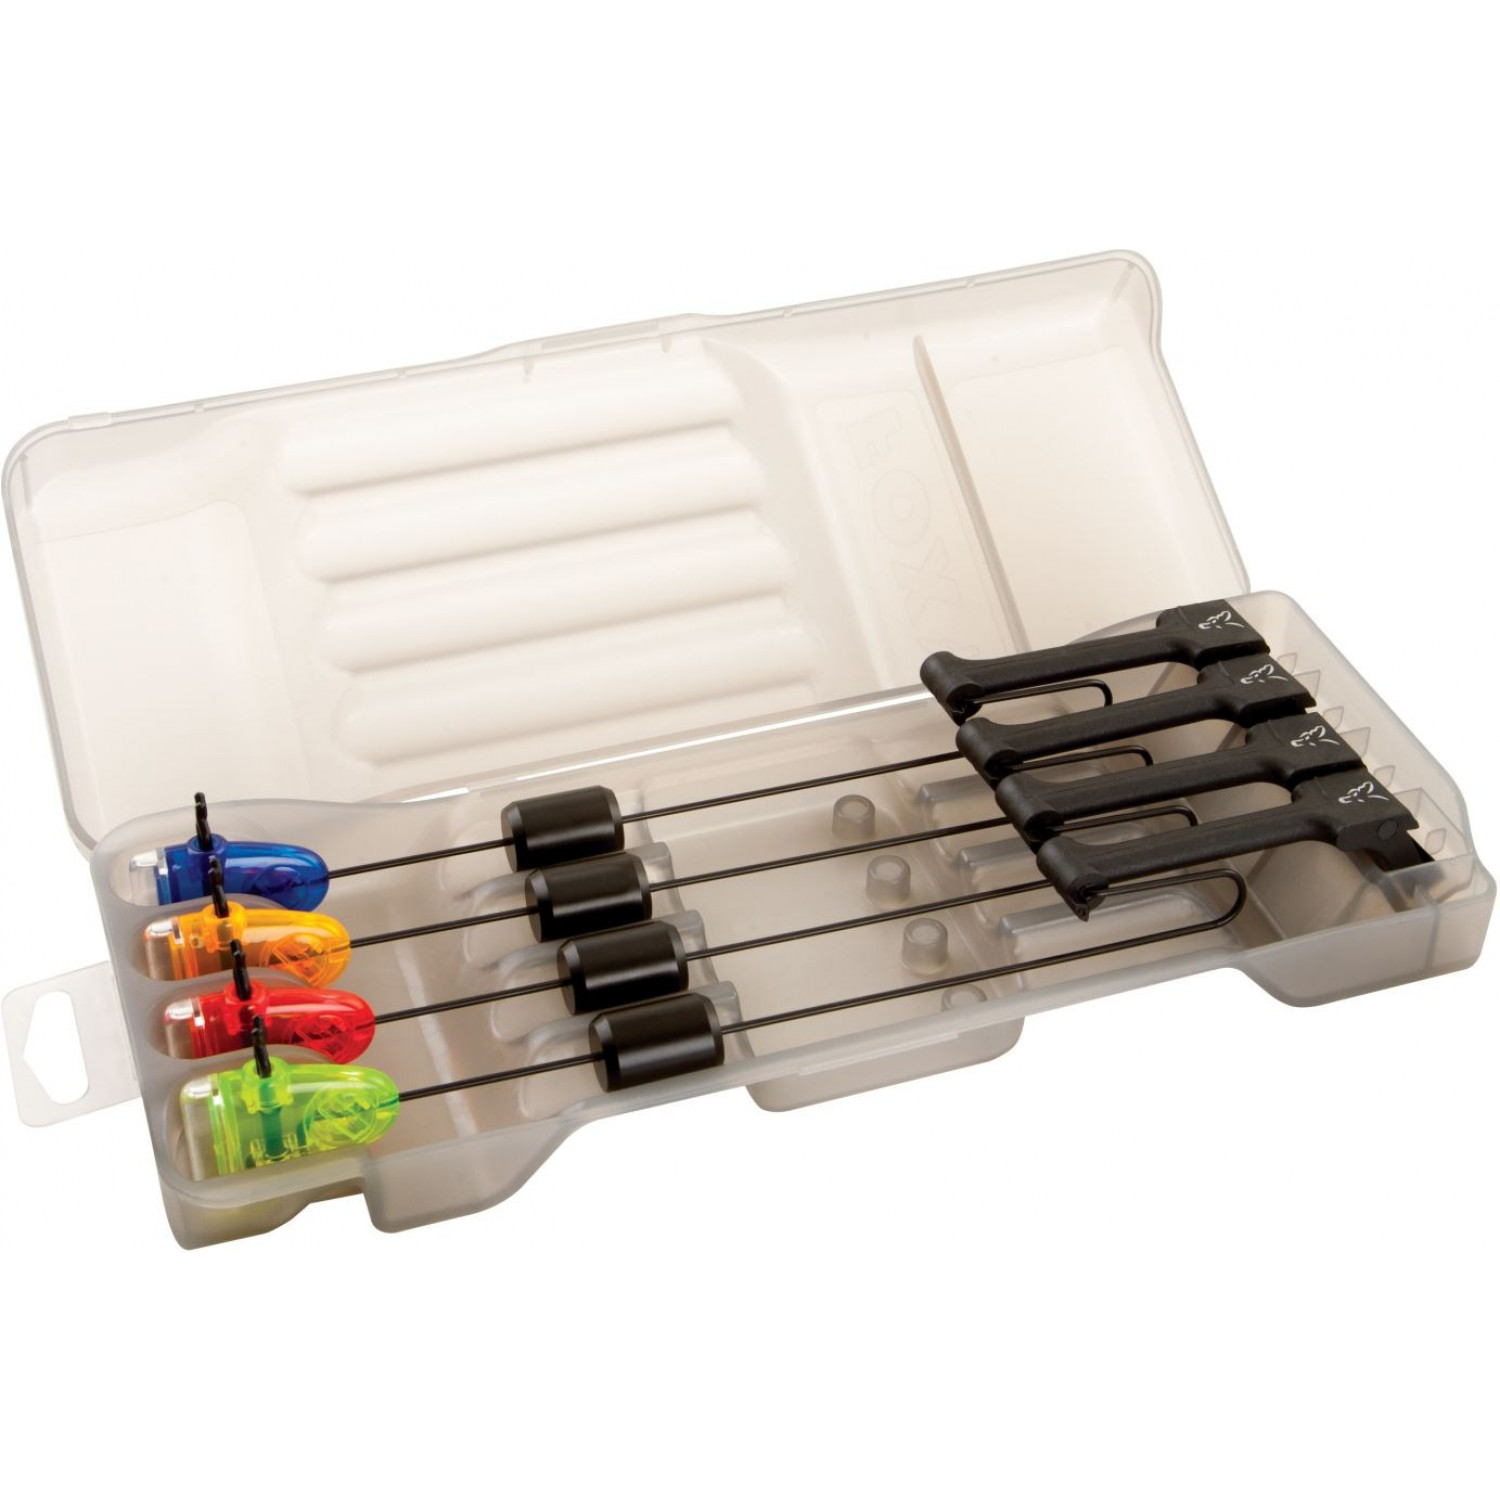 Fox Micro Swinger - 4 Rod Set (R,O,G,B)